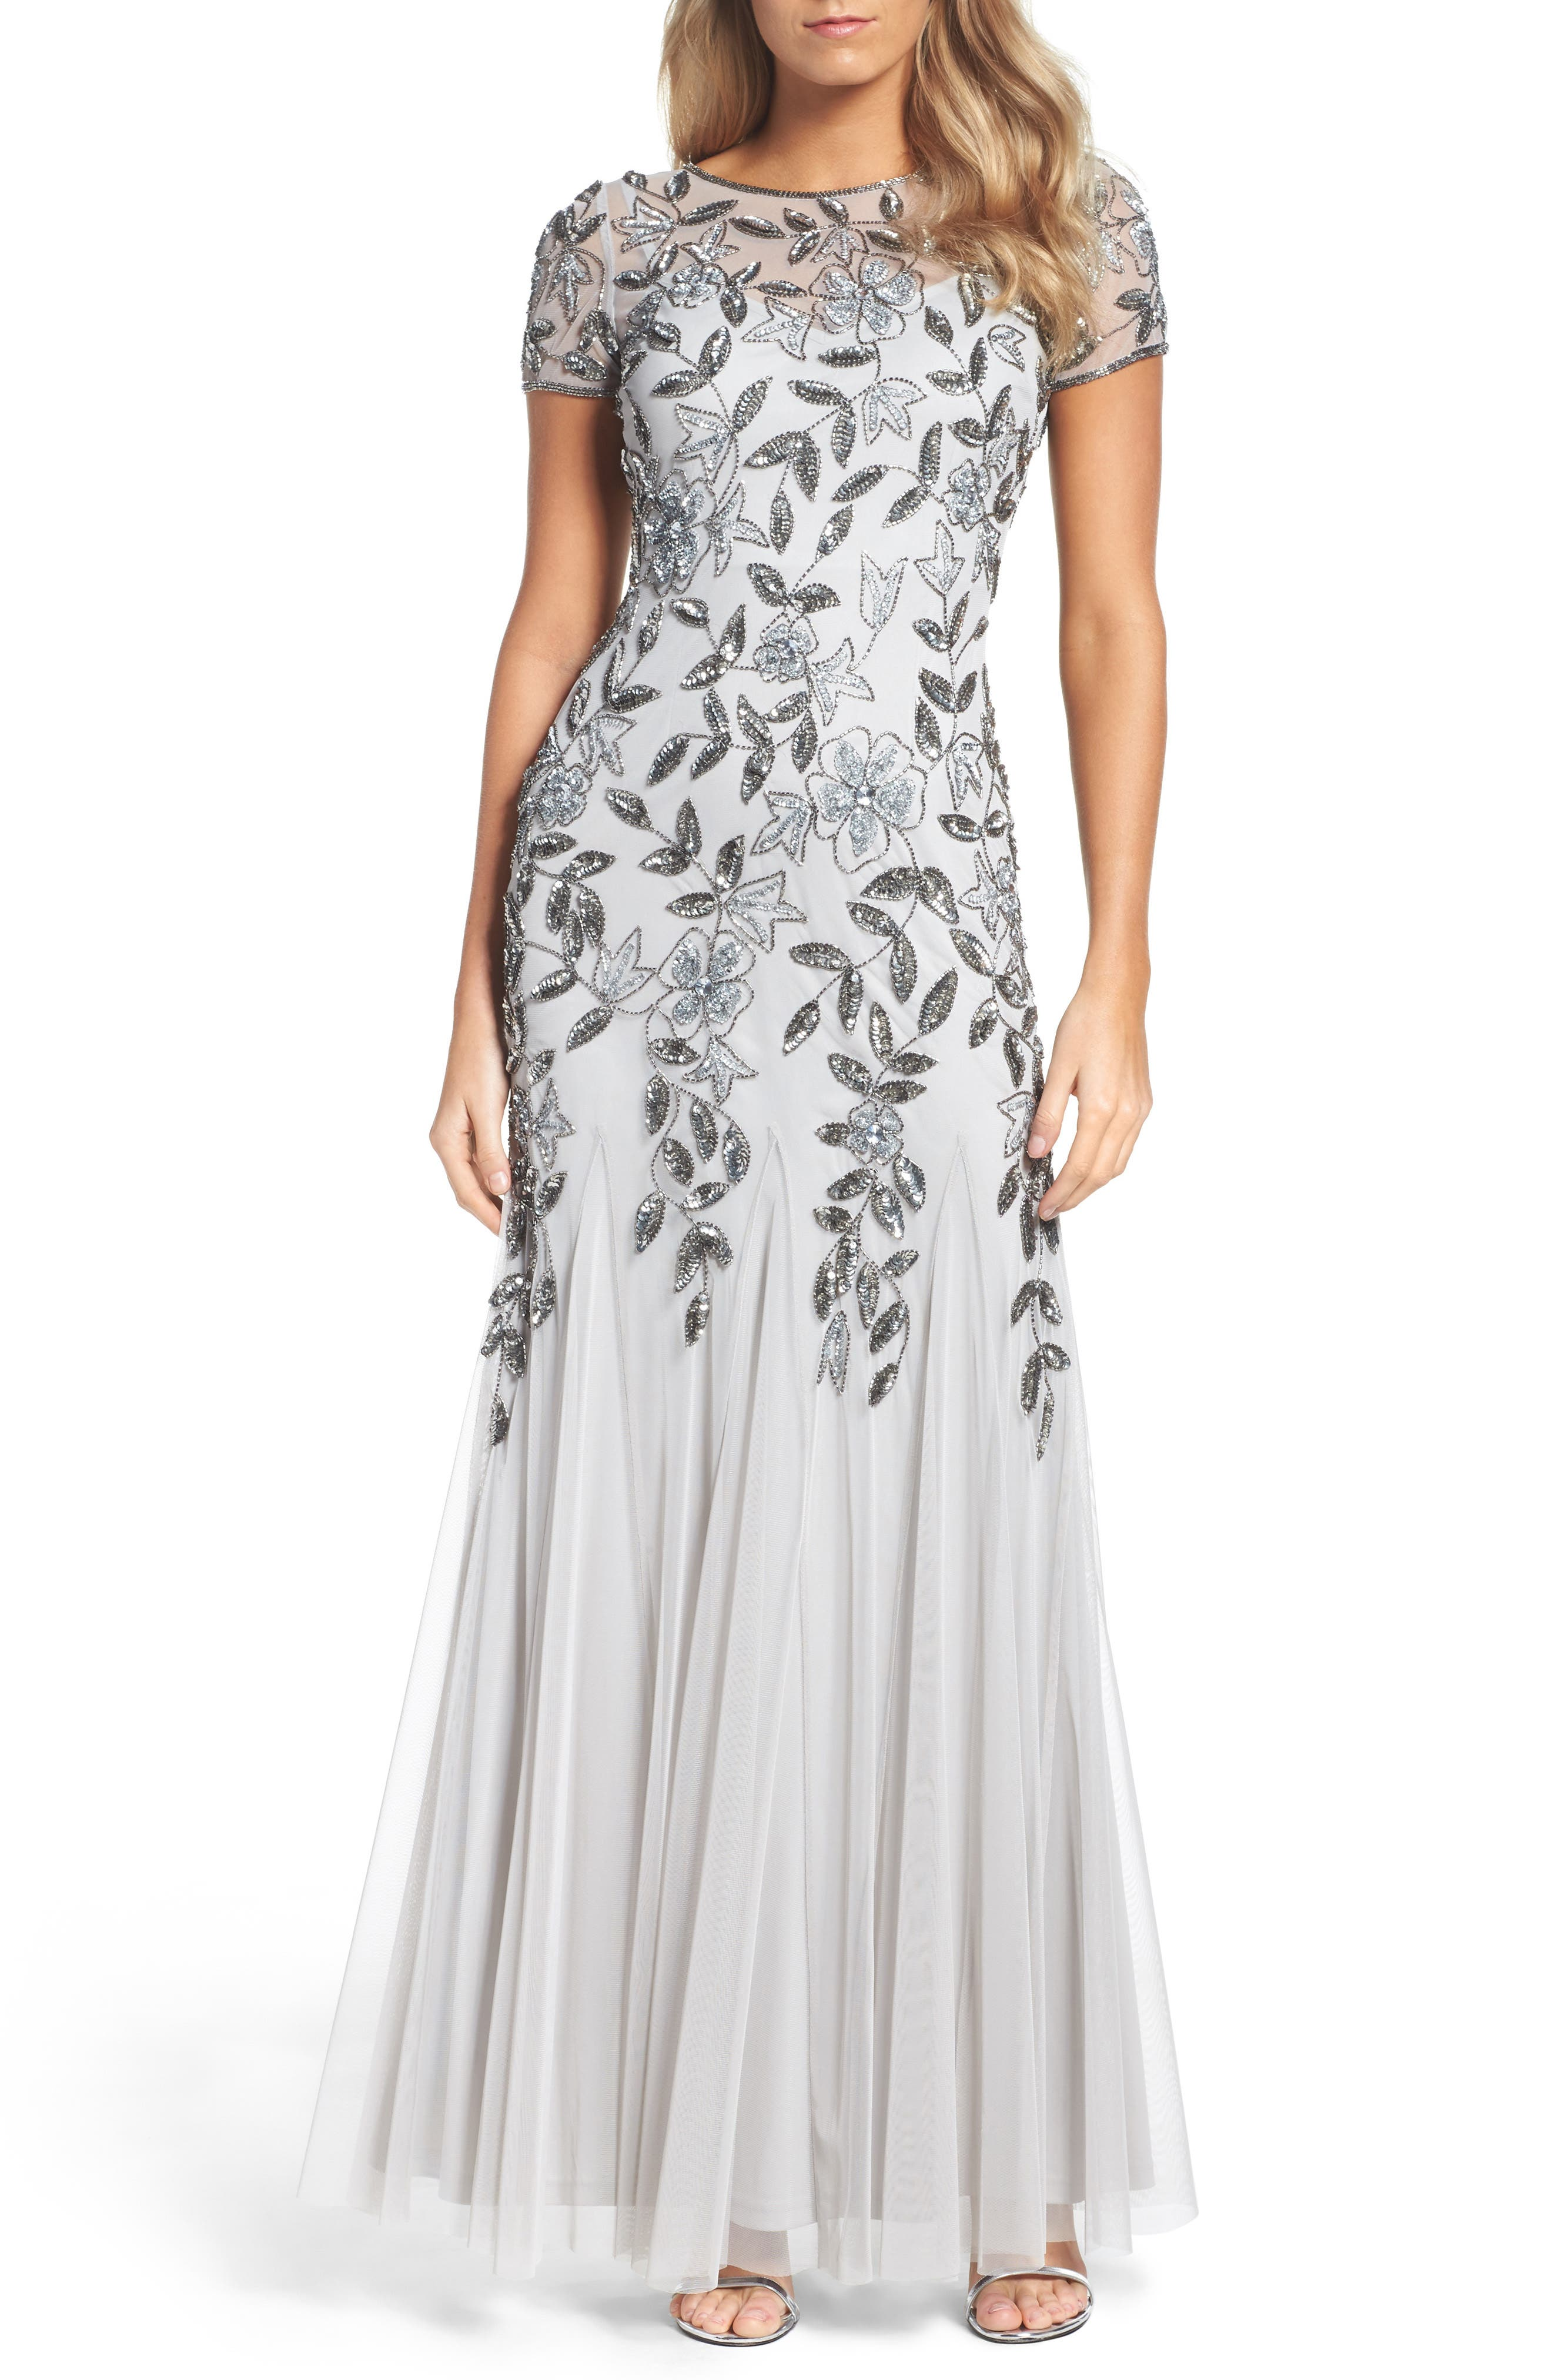 Main Image - Adrianna Papell Floral Beaded Trumpet Gown (Regular & Petite)